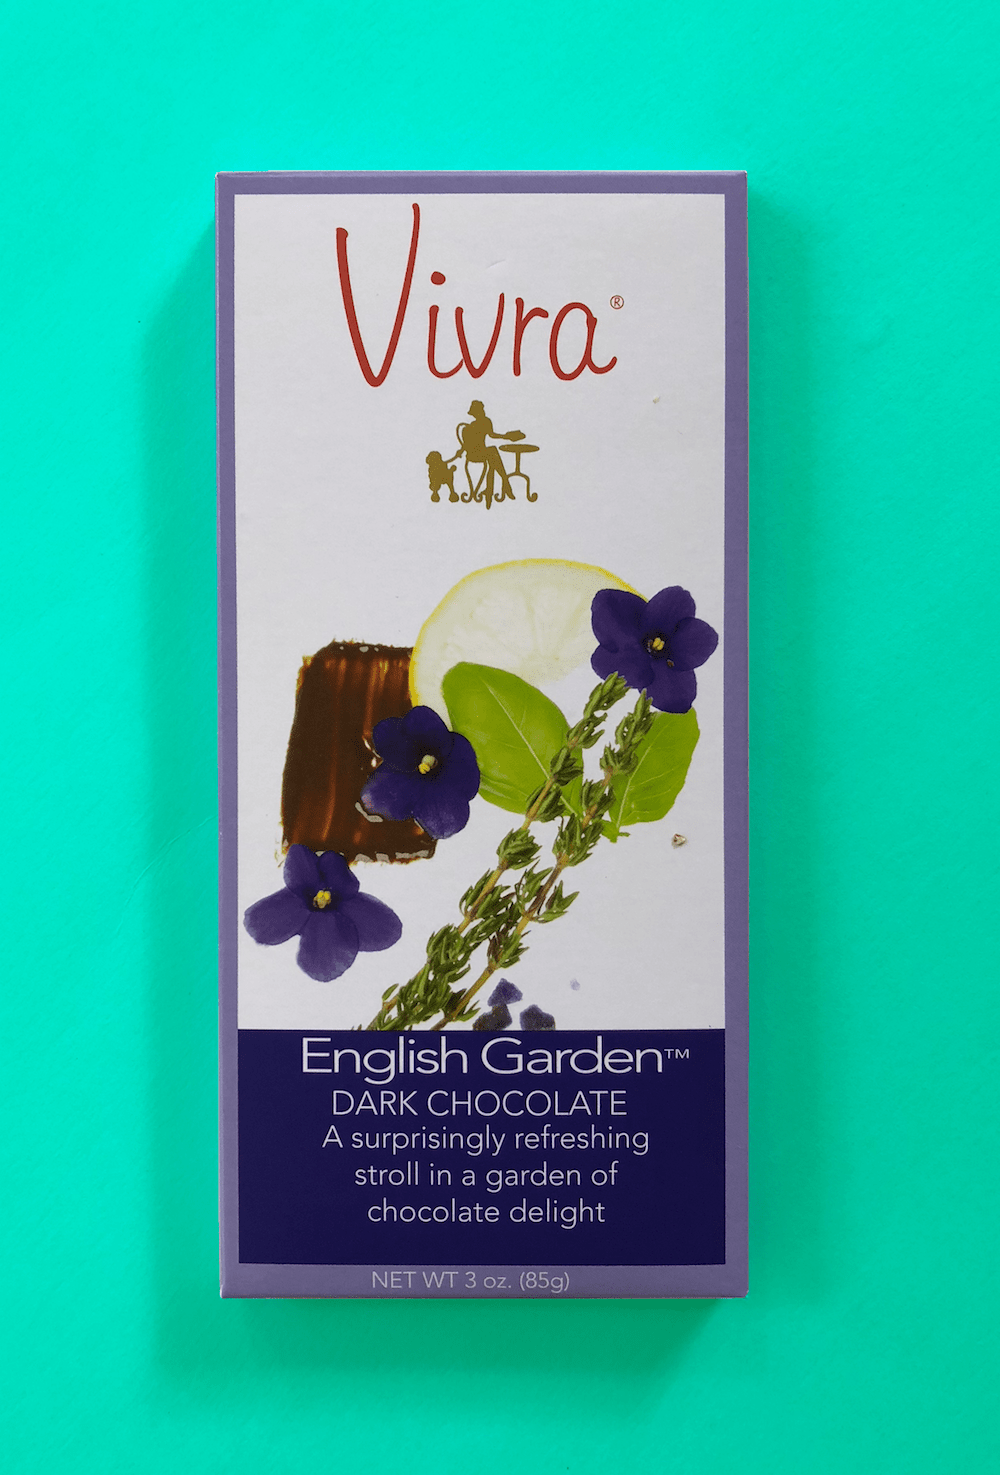 dark-chocolate-english-garden-vivra